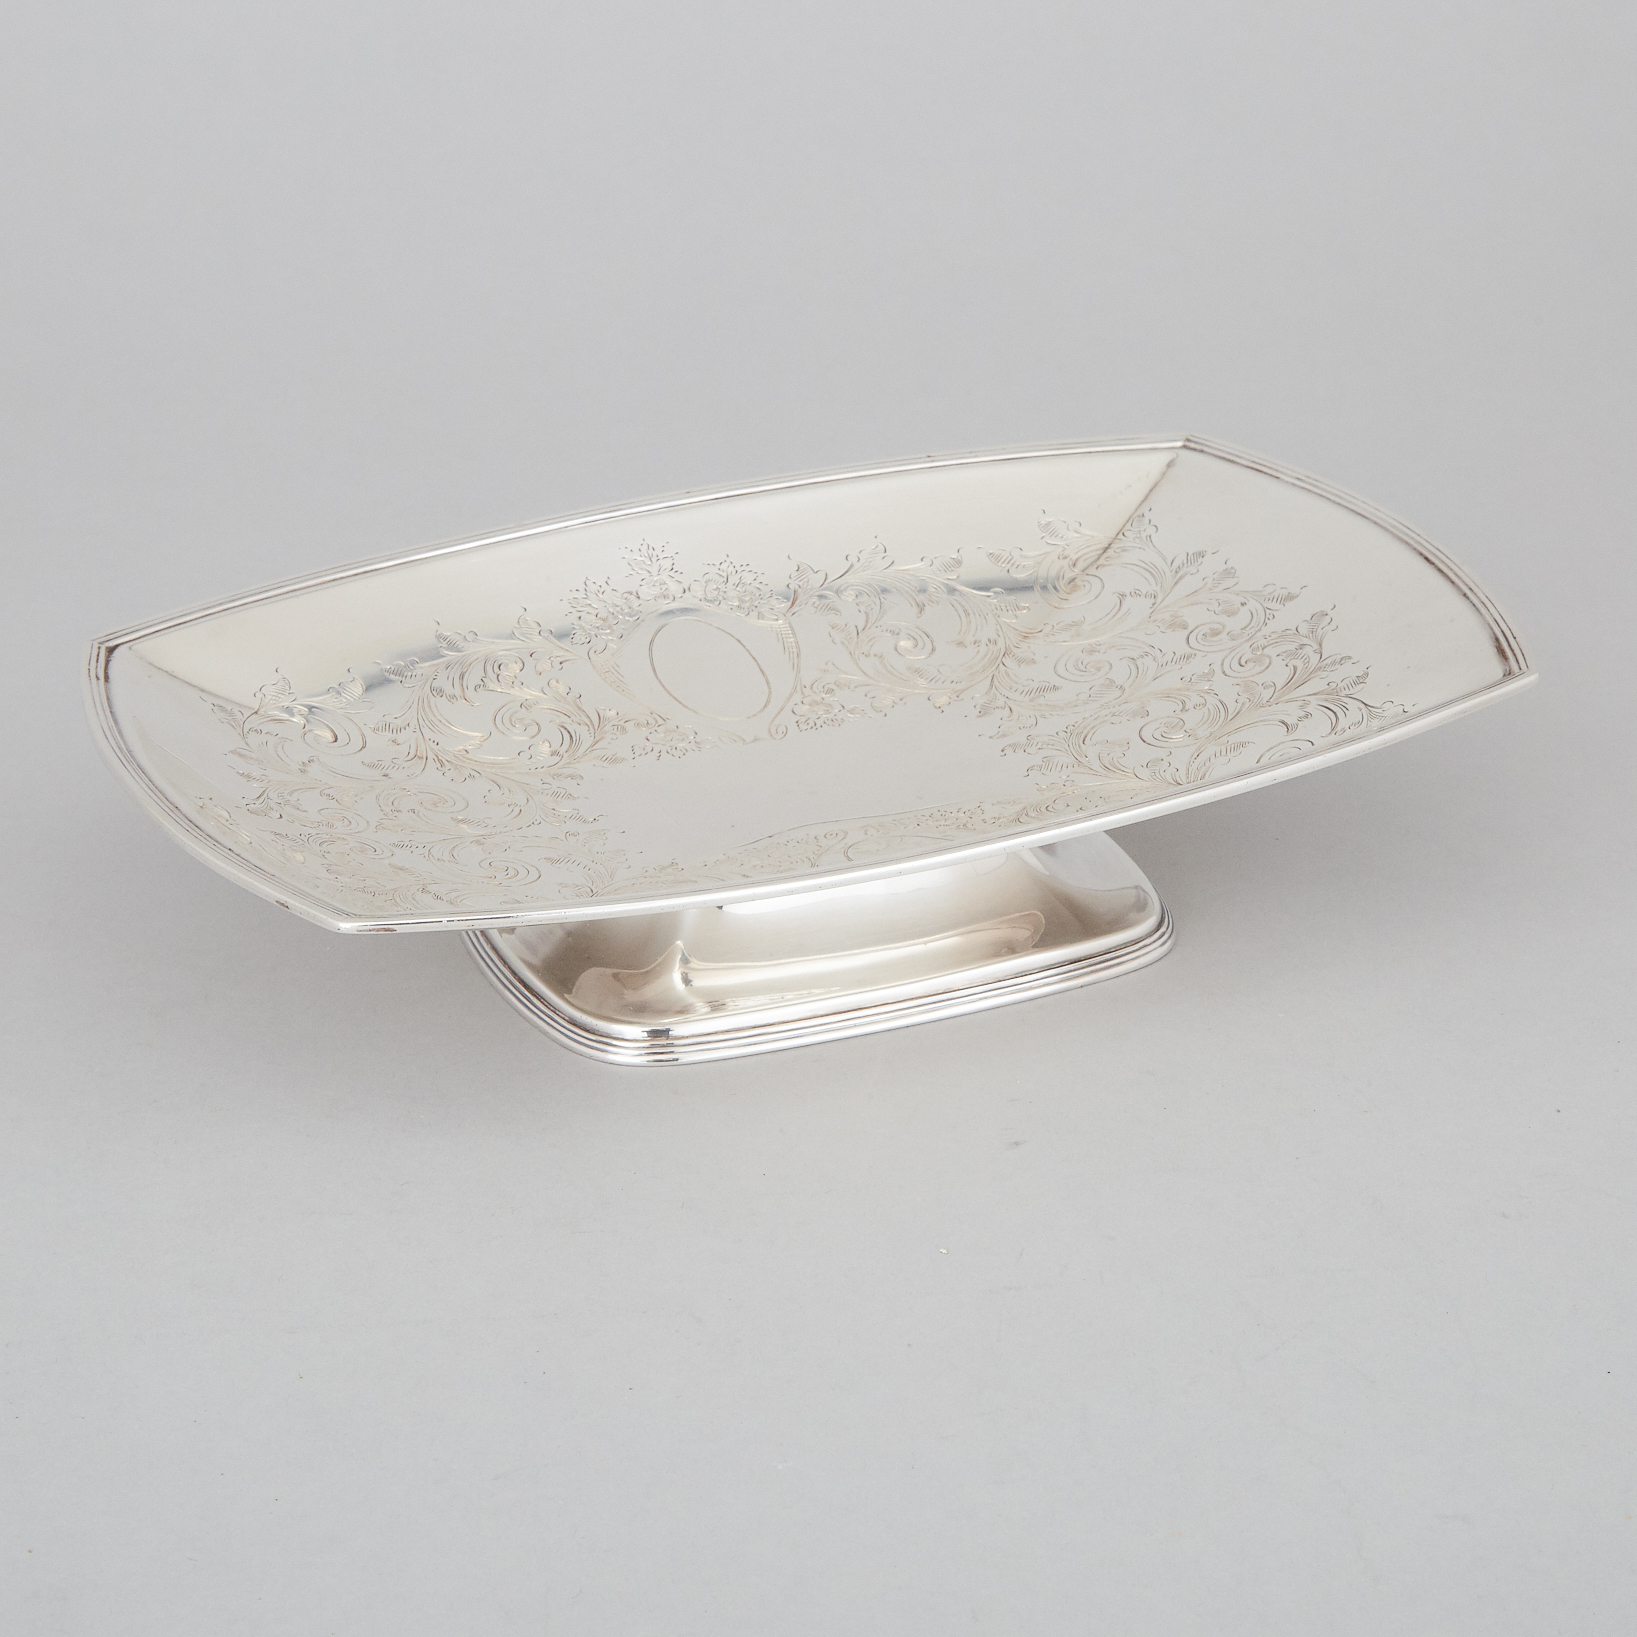 English Silver Oblong Dish, Cooper Bros. & Sons, Sheffield, 1926